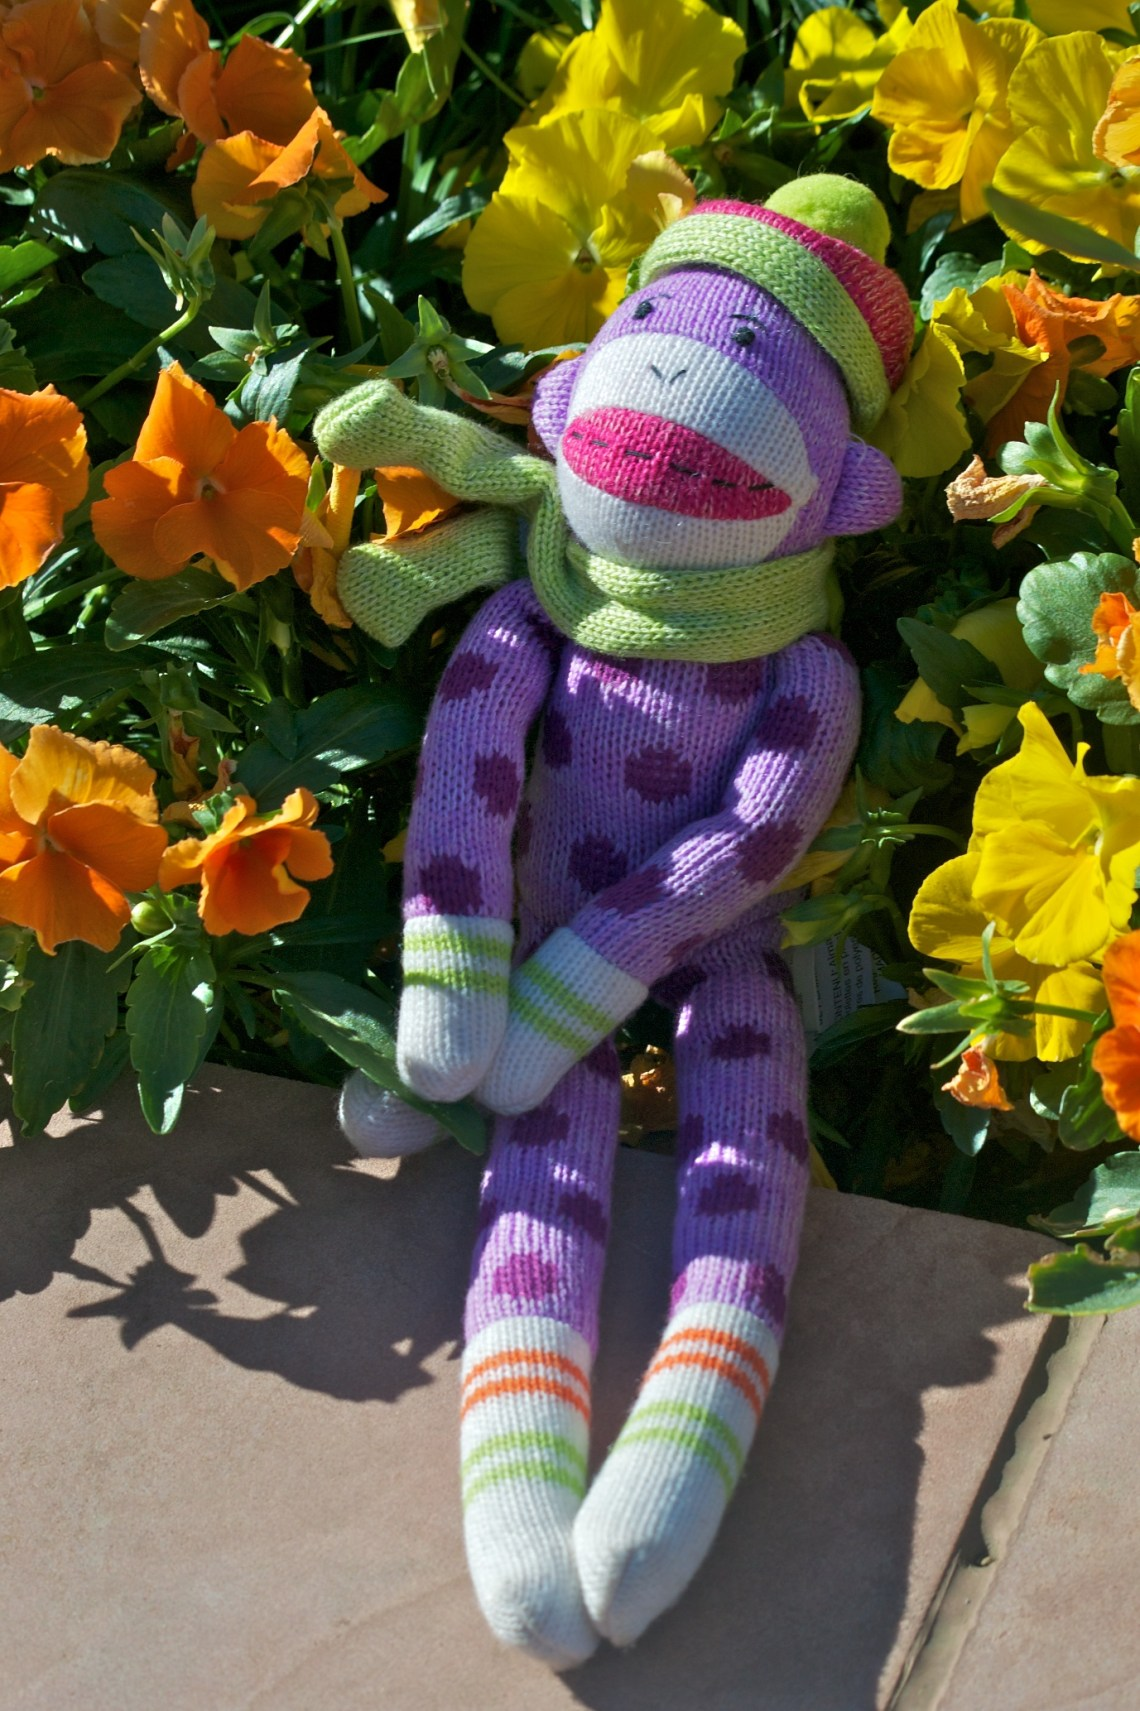 Sock Monkey Sitting Amongst Flowers